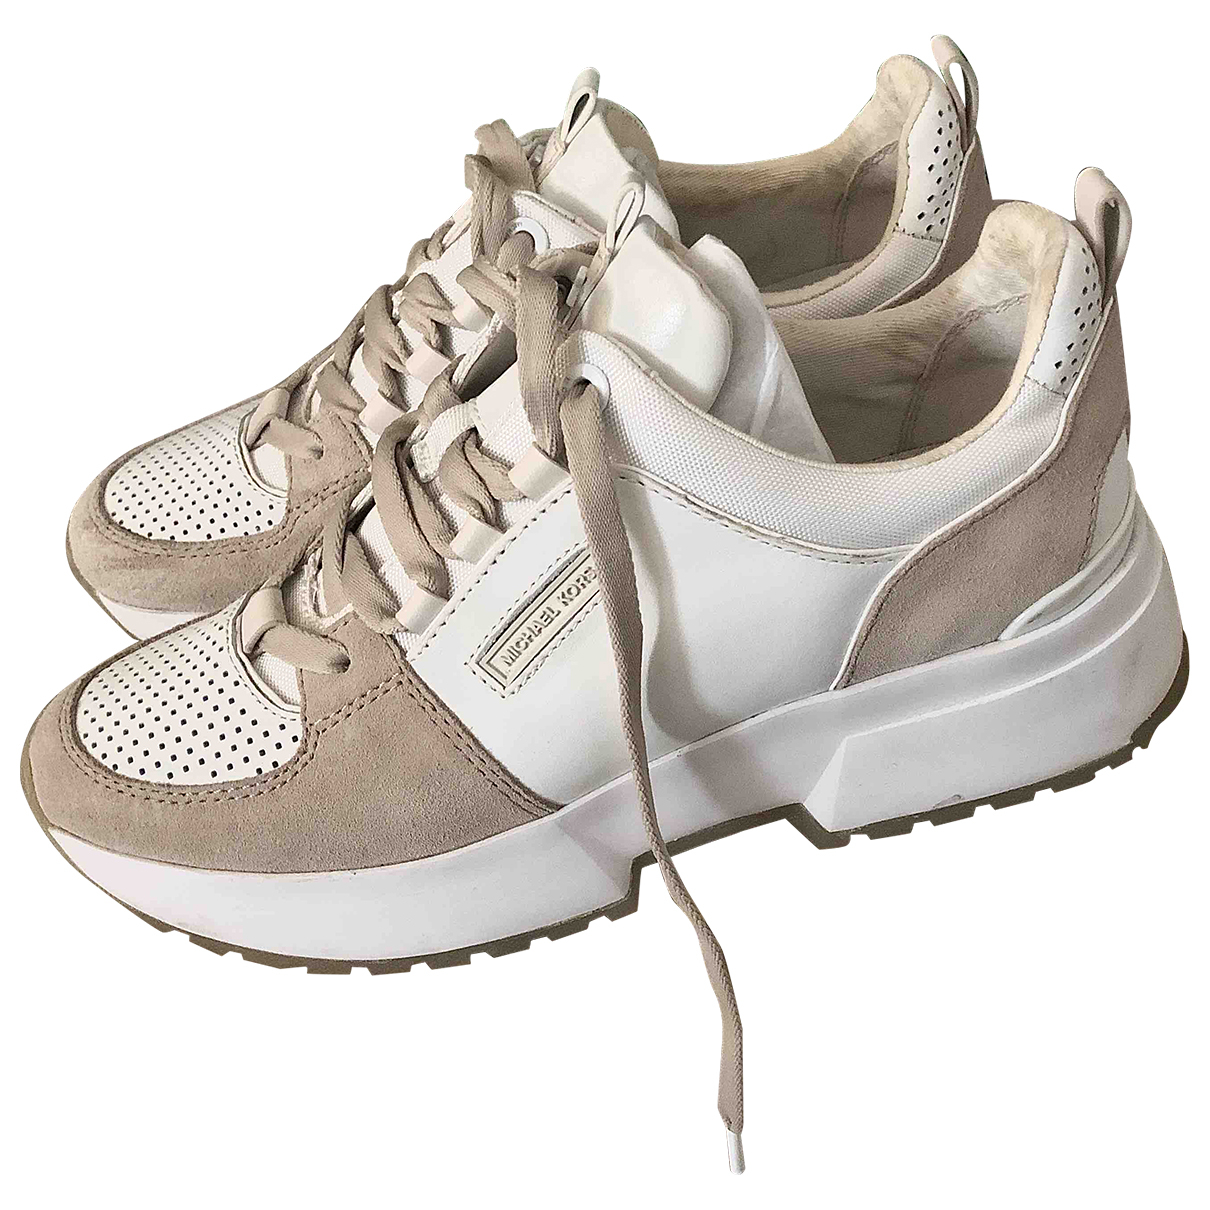 Michael Kors \N Beige Leather Trainers for Women 39 EU